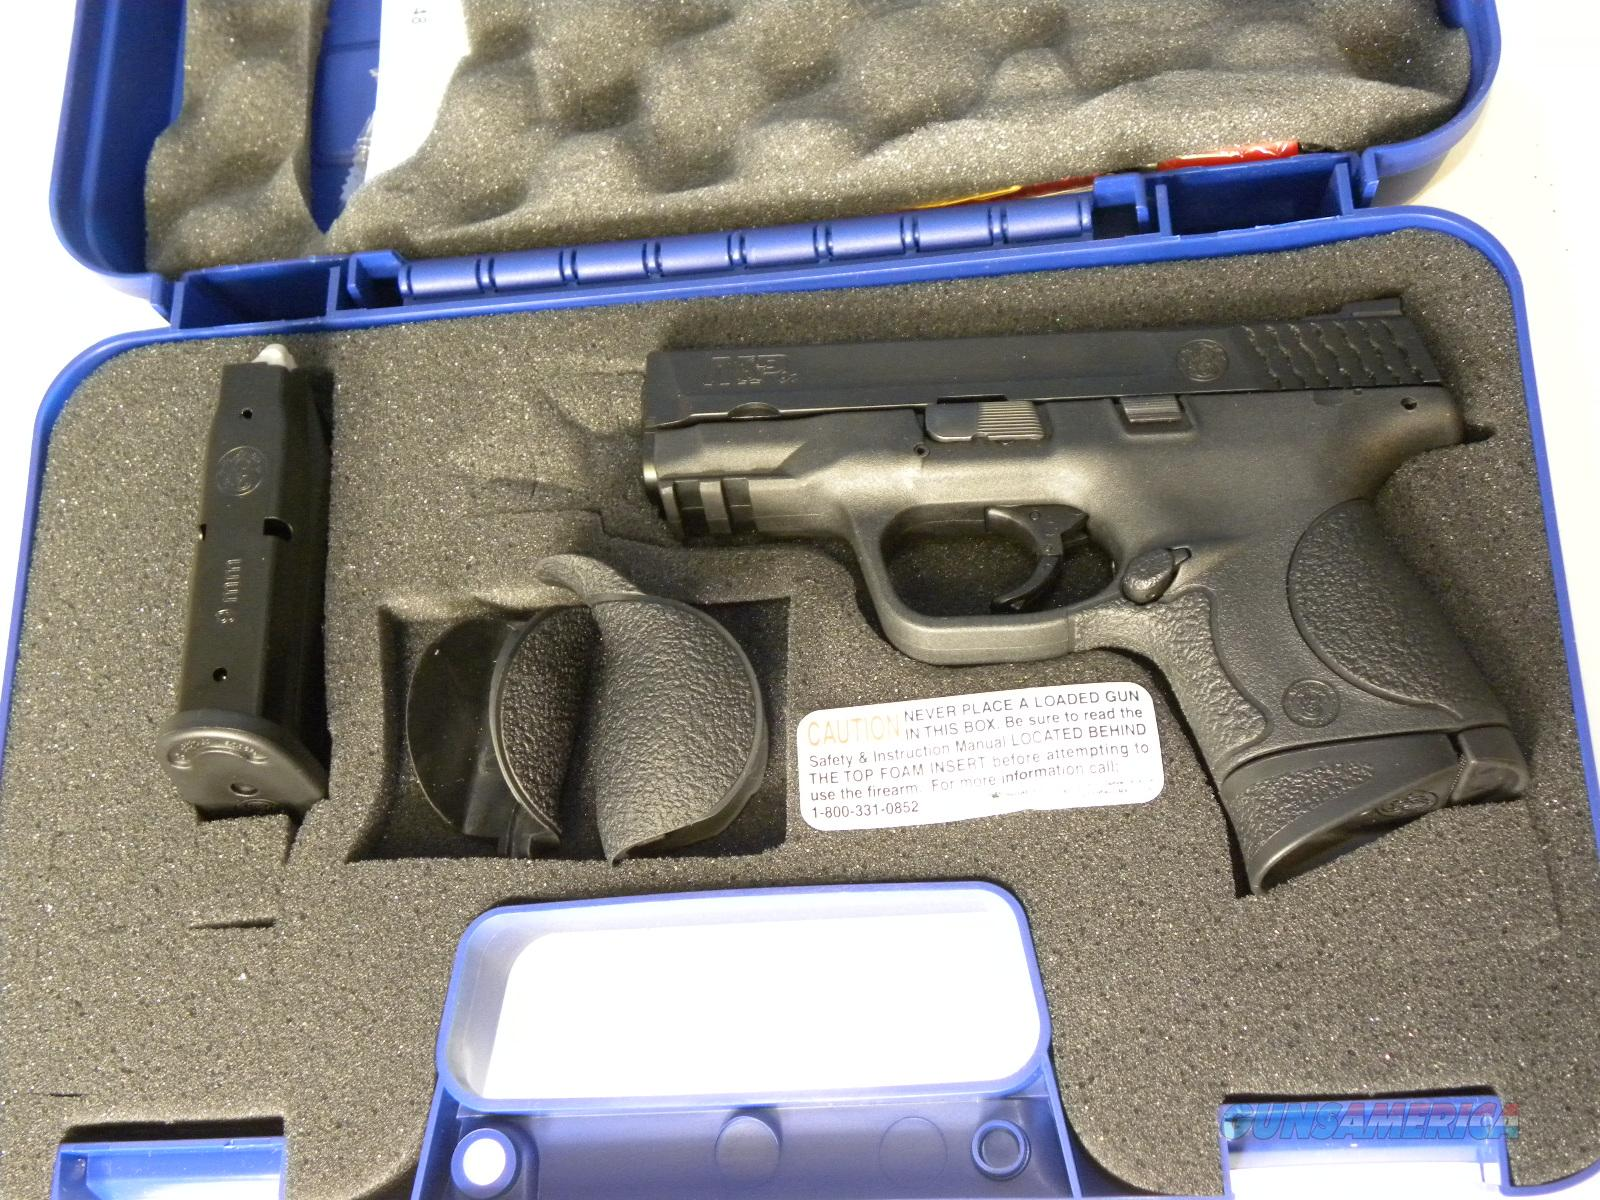 S&W M&P 9mm Compact 209304  Guns > Pistols > Smith & Wesson Pistols - Autos > Polymer Frame